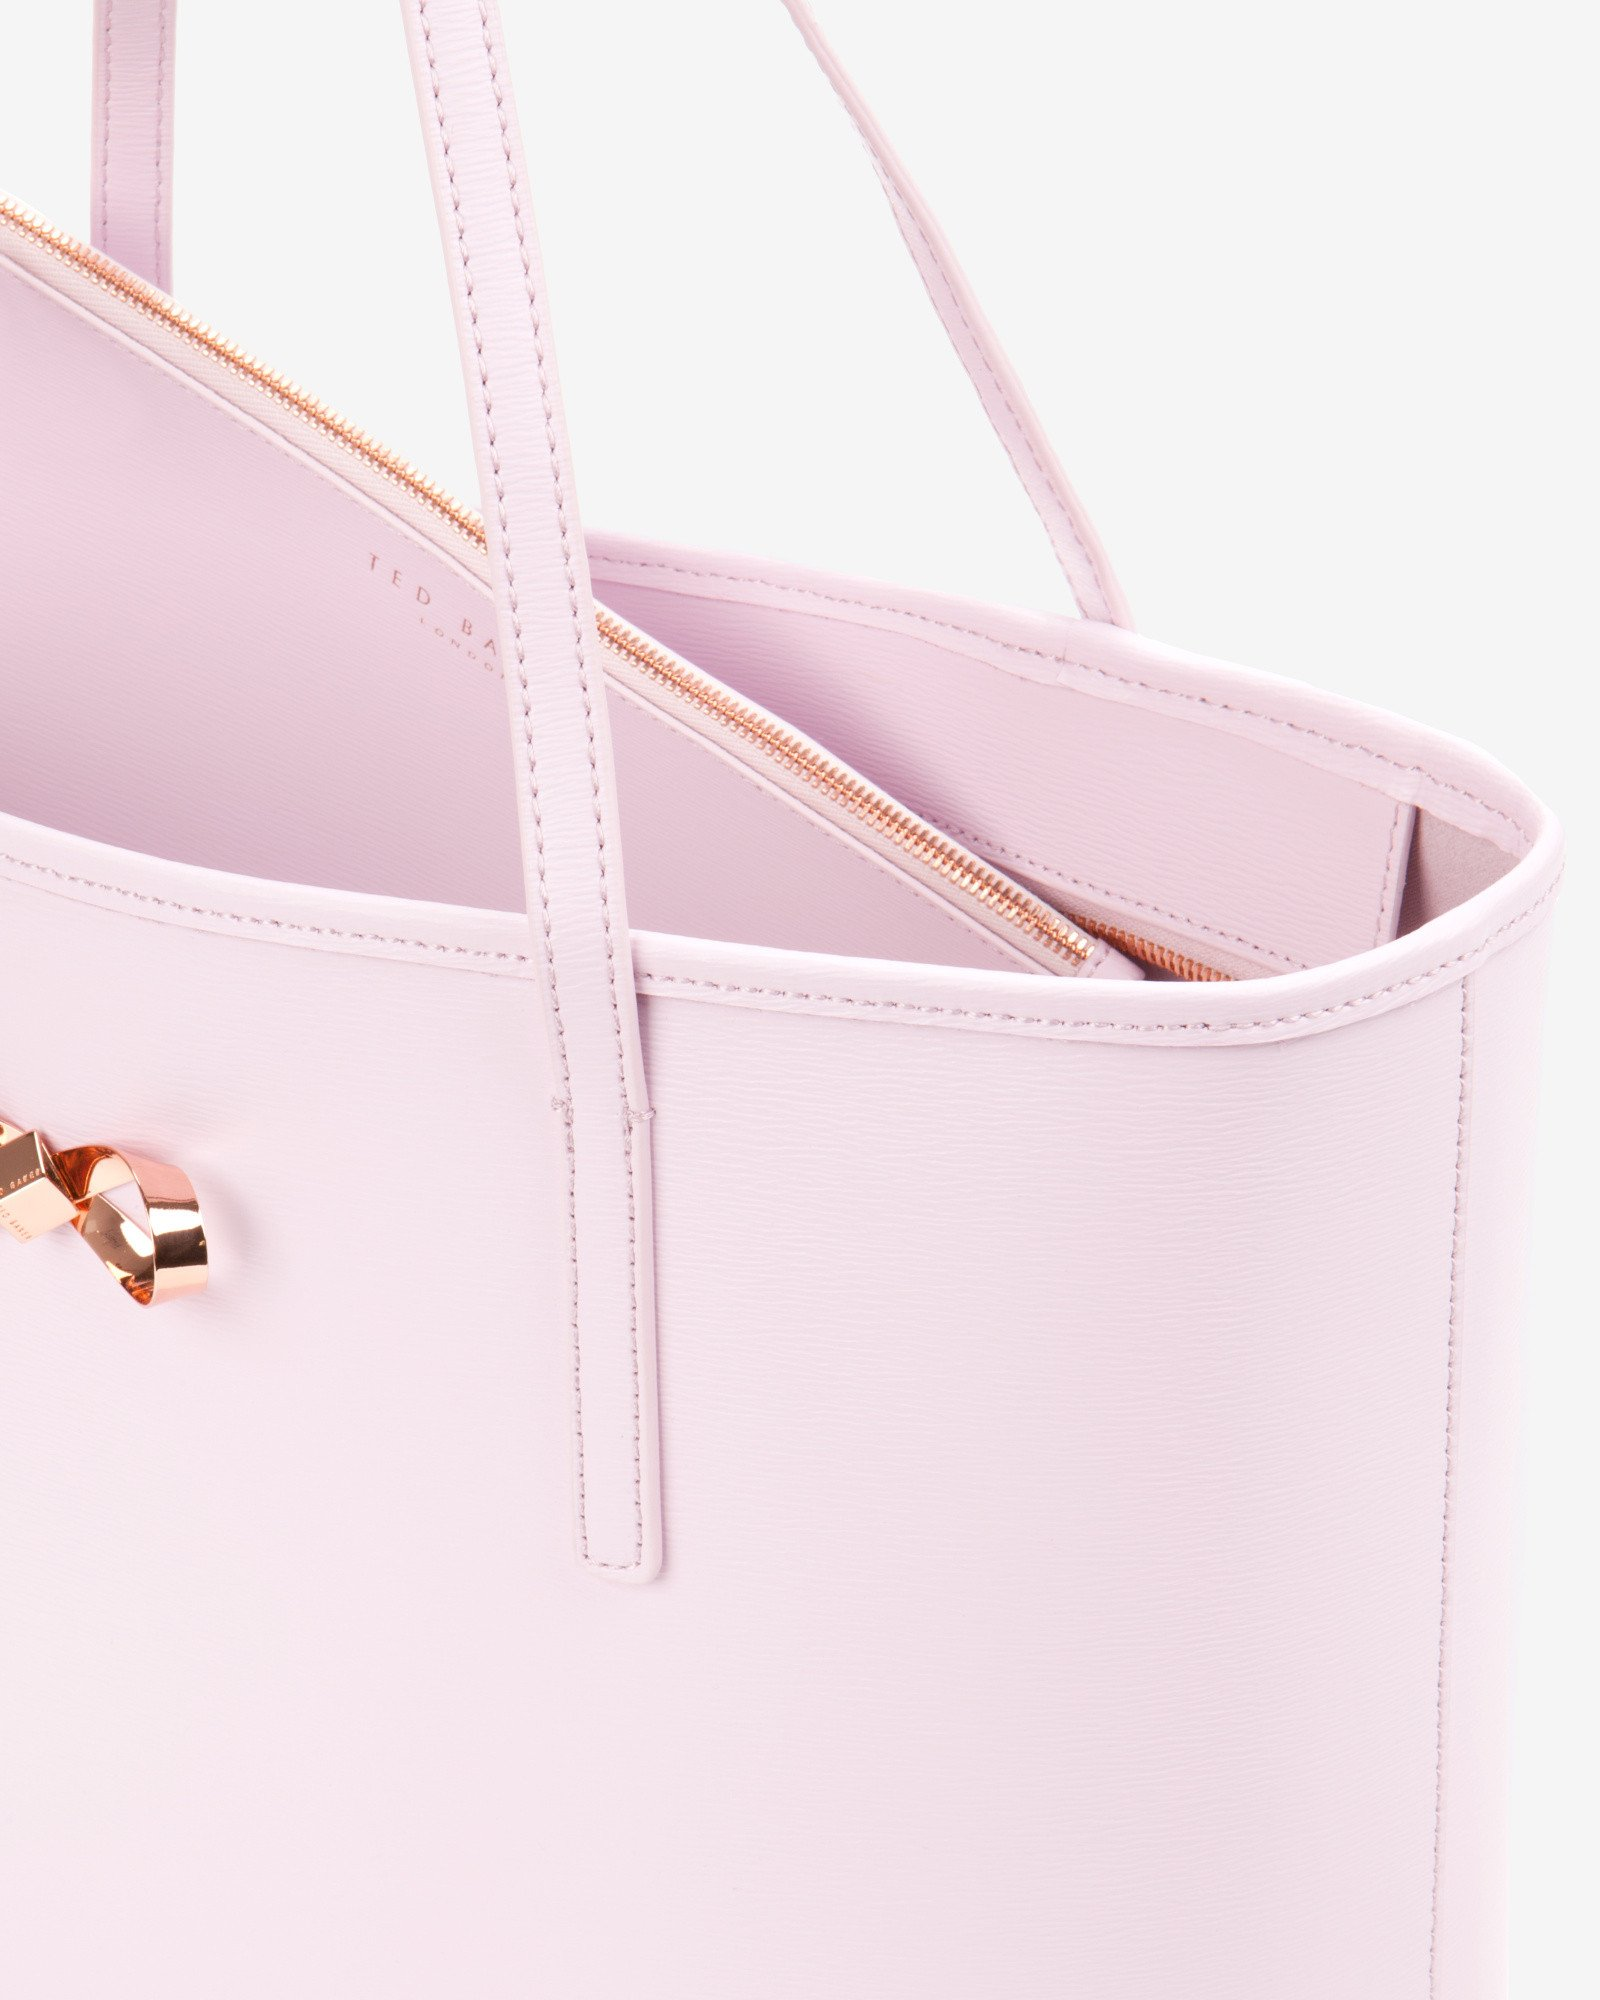 111d475912f5 Lyst - Ted Baker Bow Detail Leather Shopper Bag in Pink